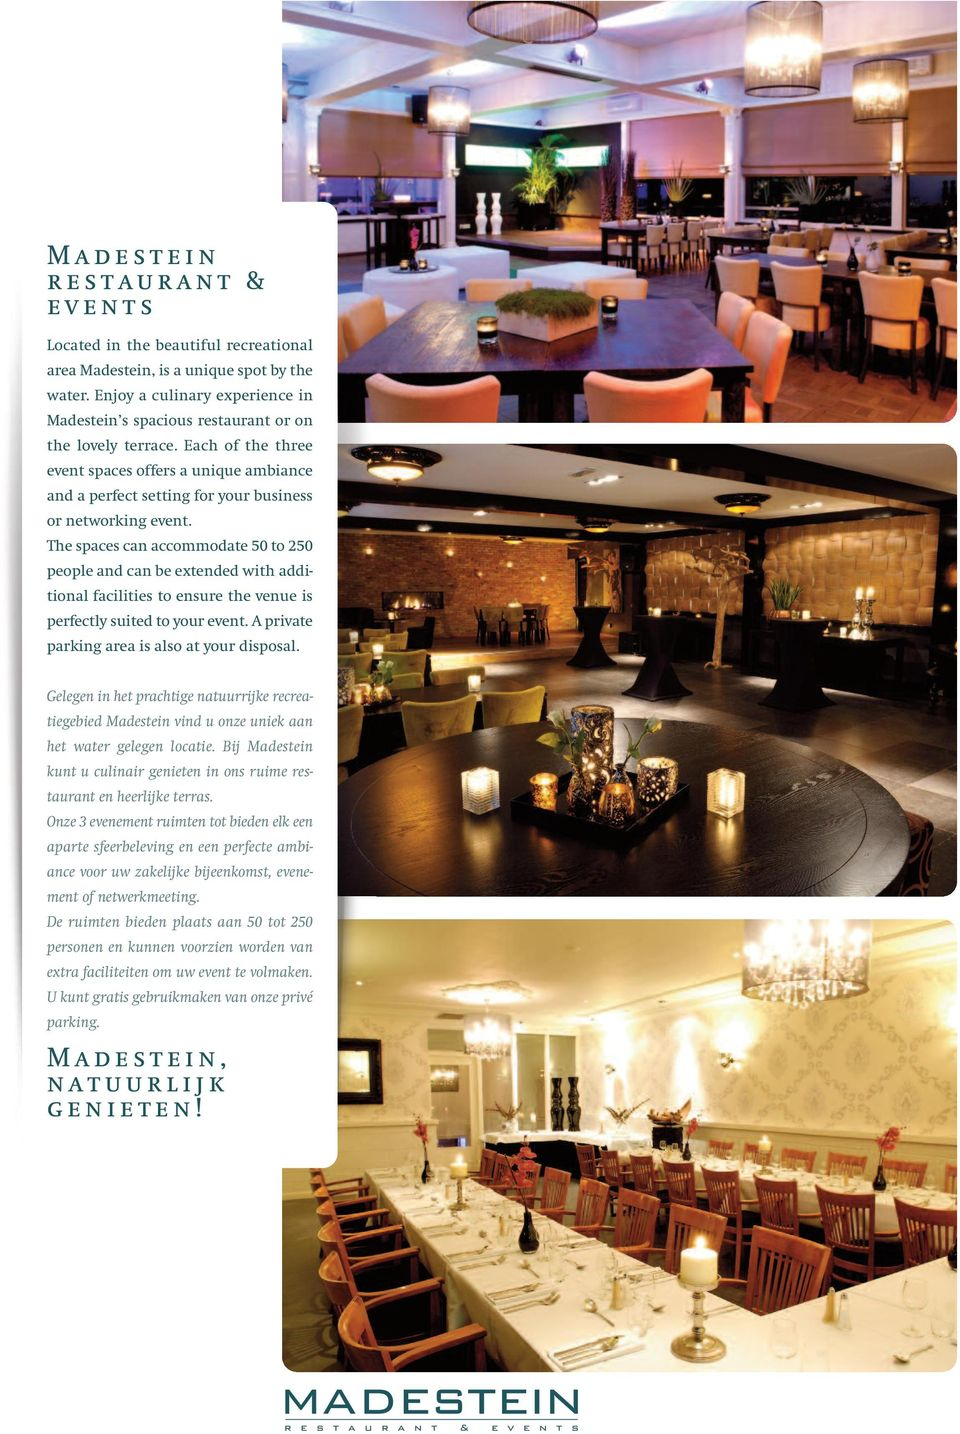 Each of the three event spaces offers a unique ambiance and a perfect setting for your business or networking event.